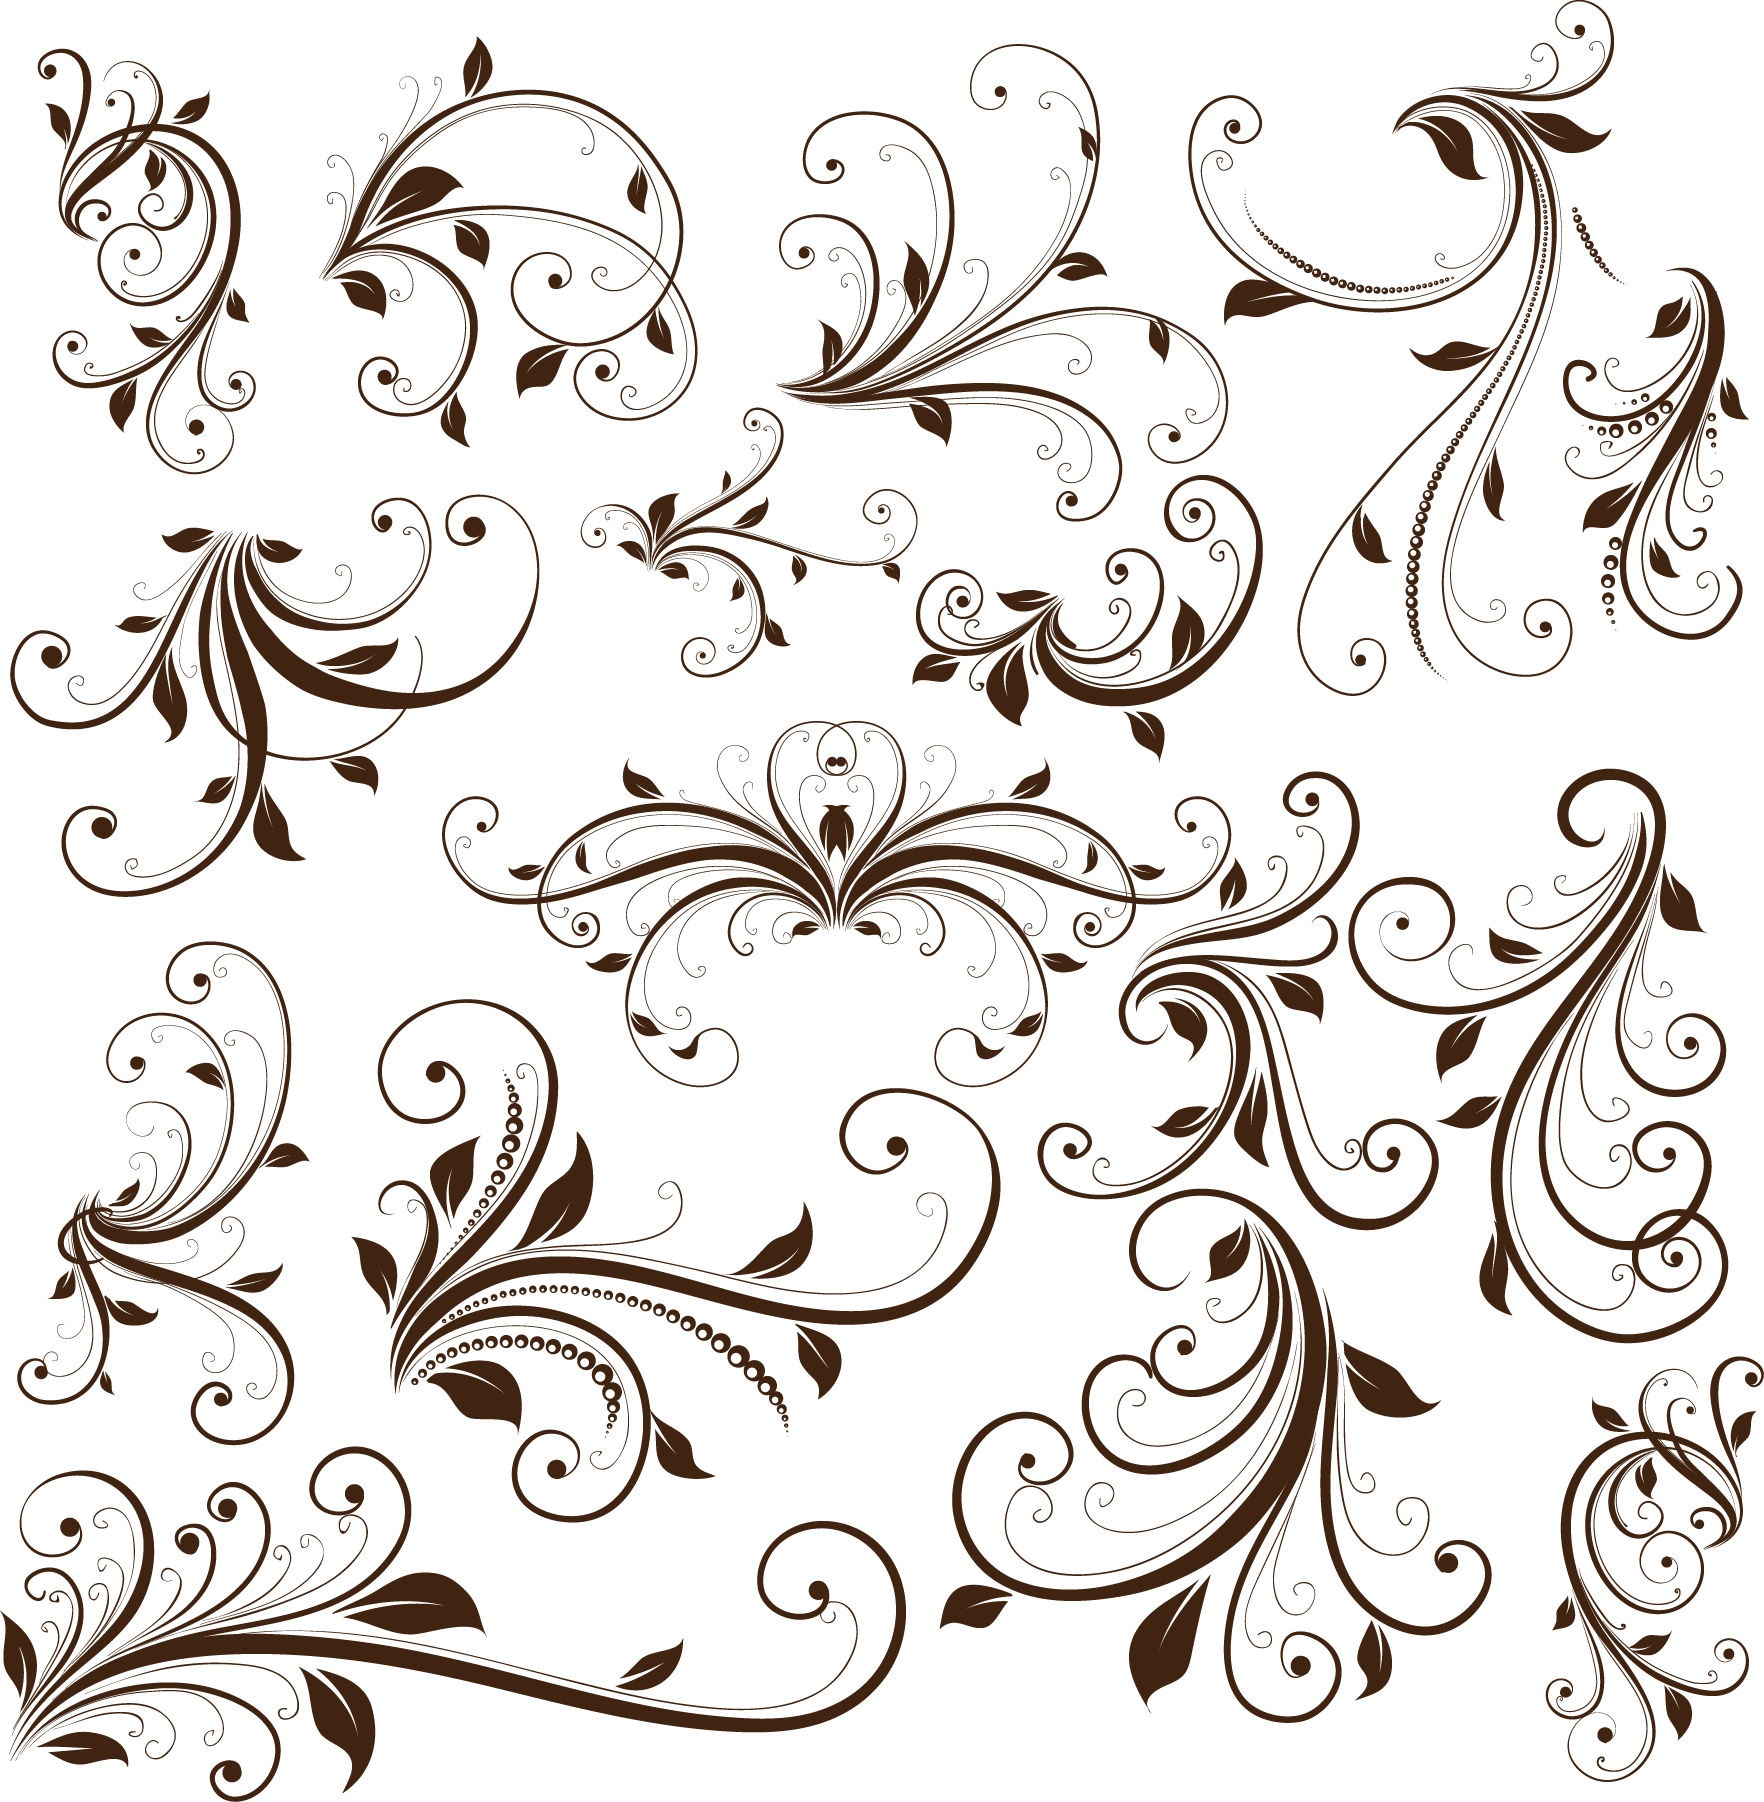 Decorative Swirl Vector Graphics